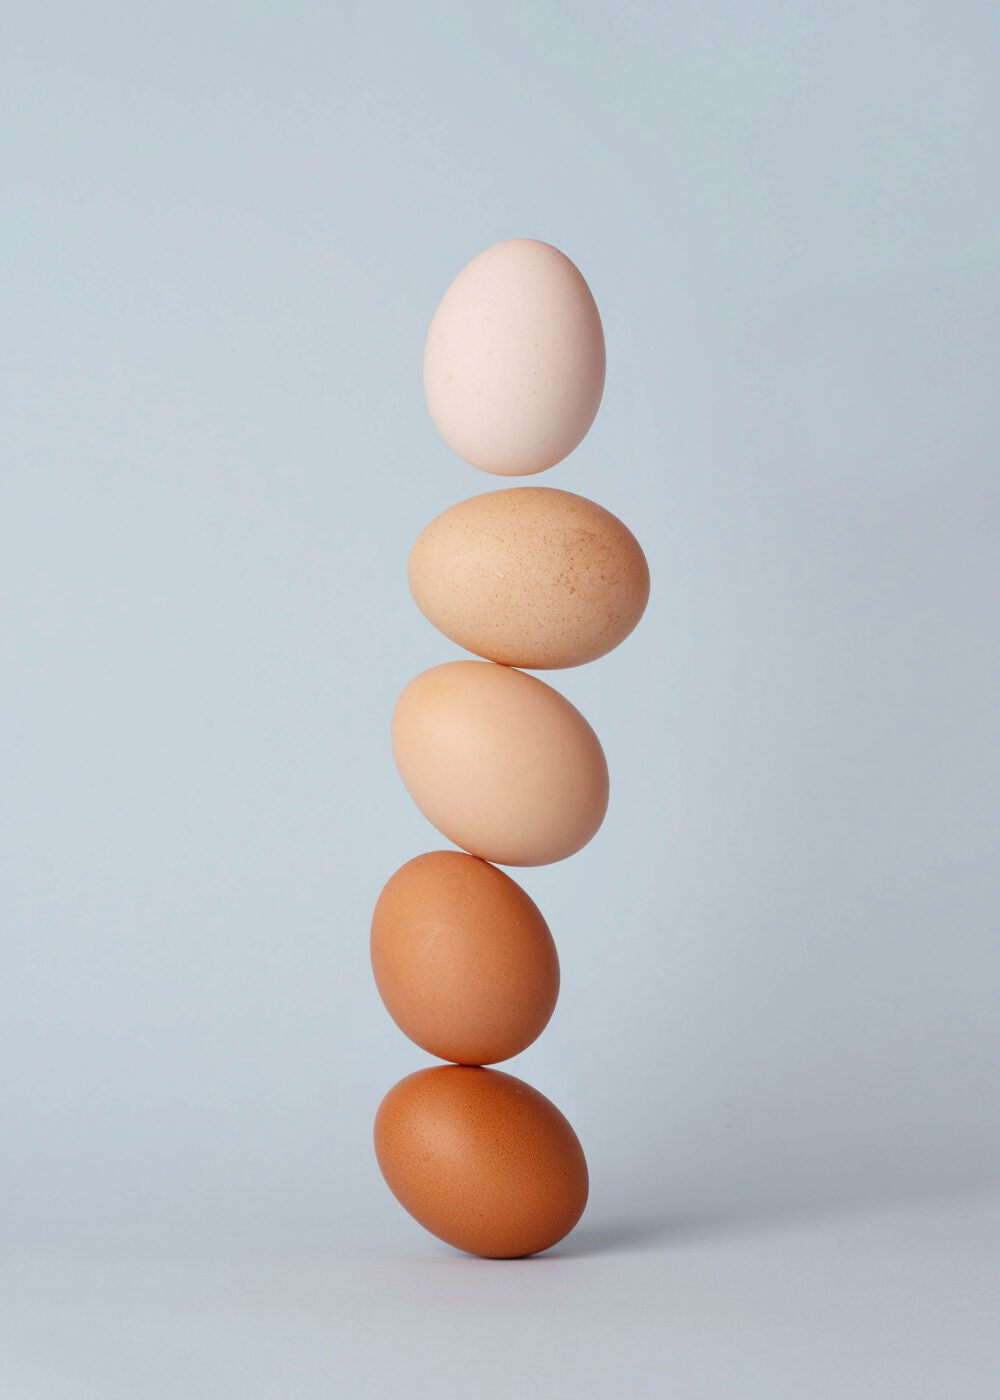 Eggs stacked up.